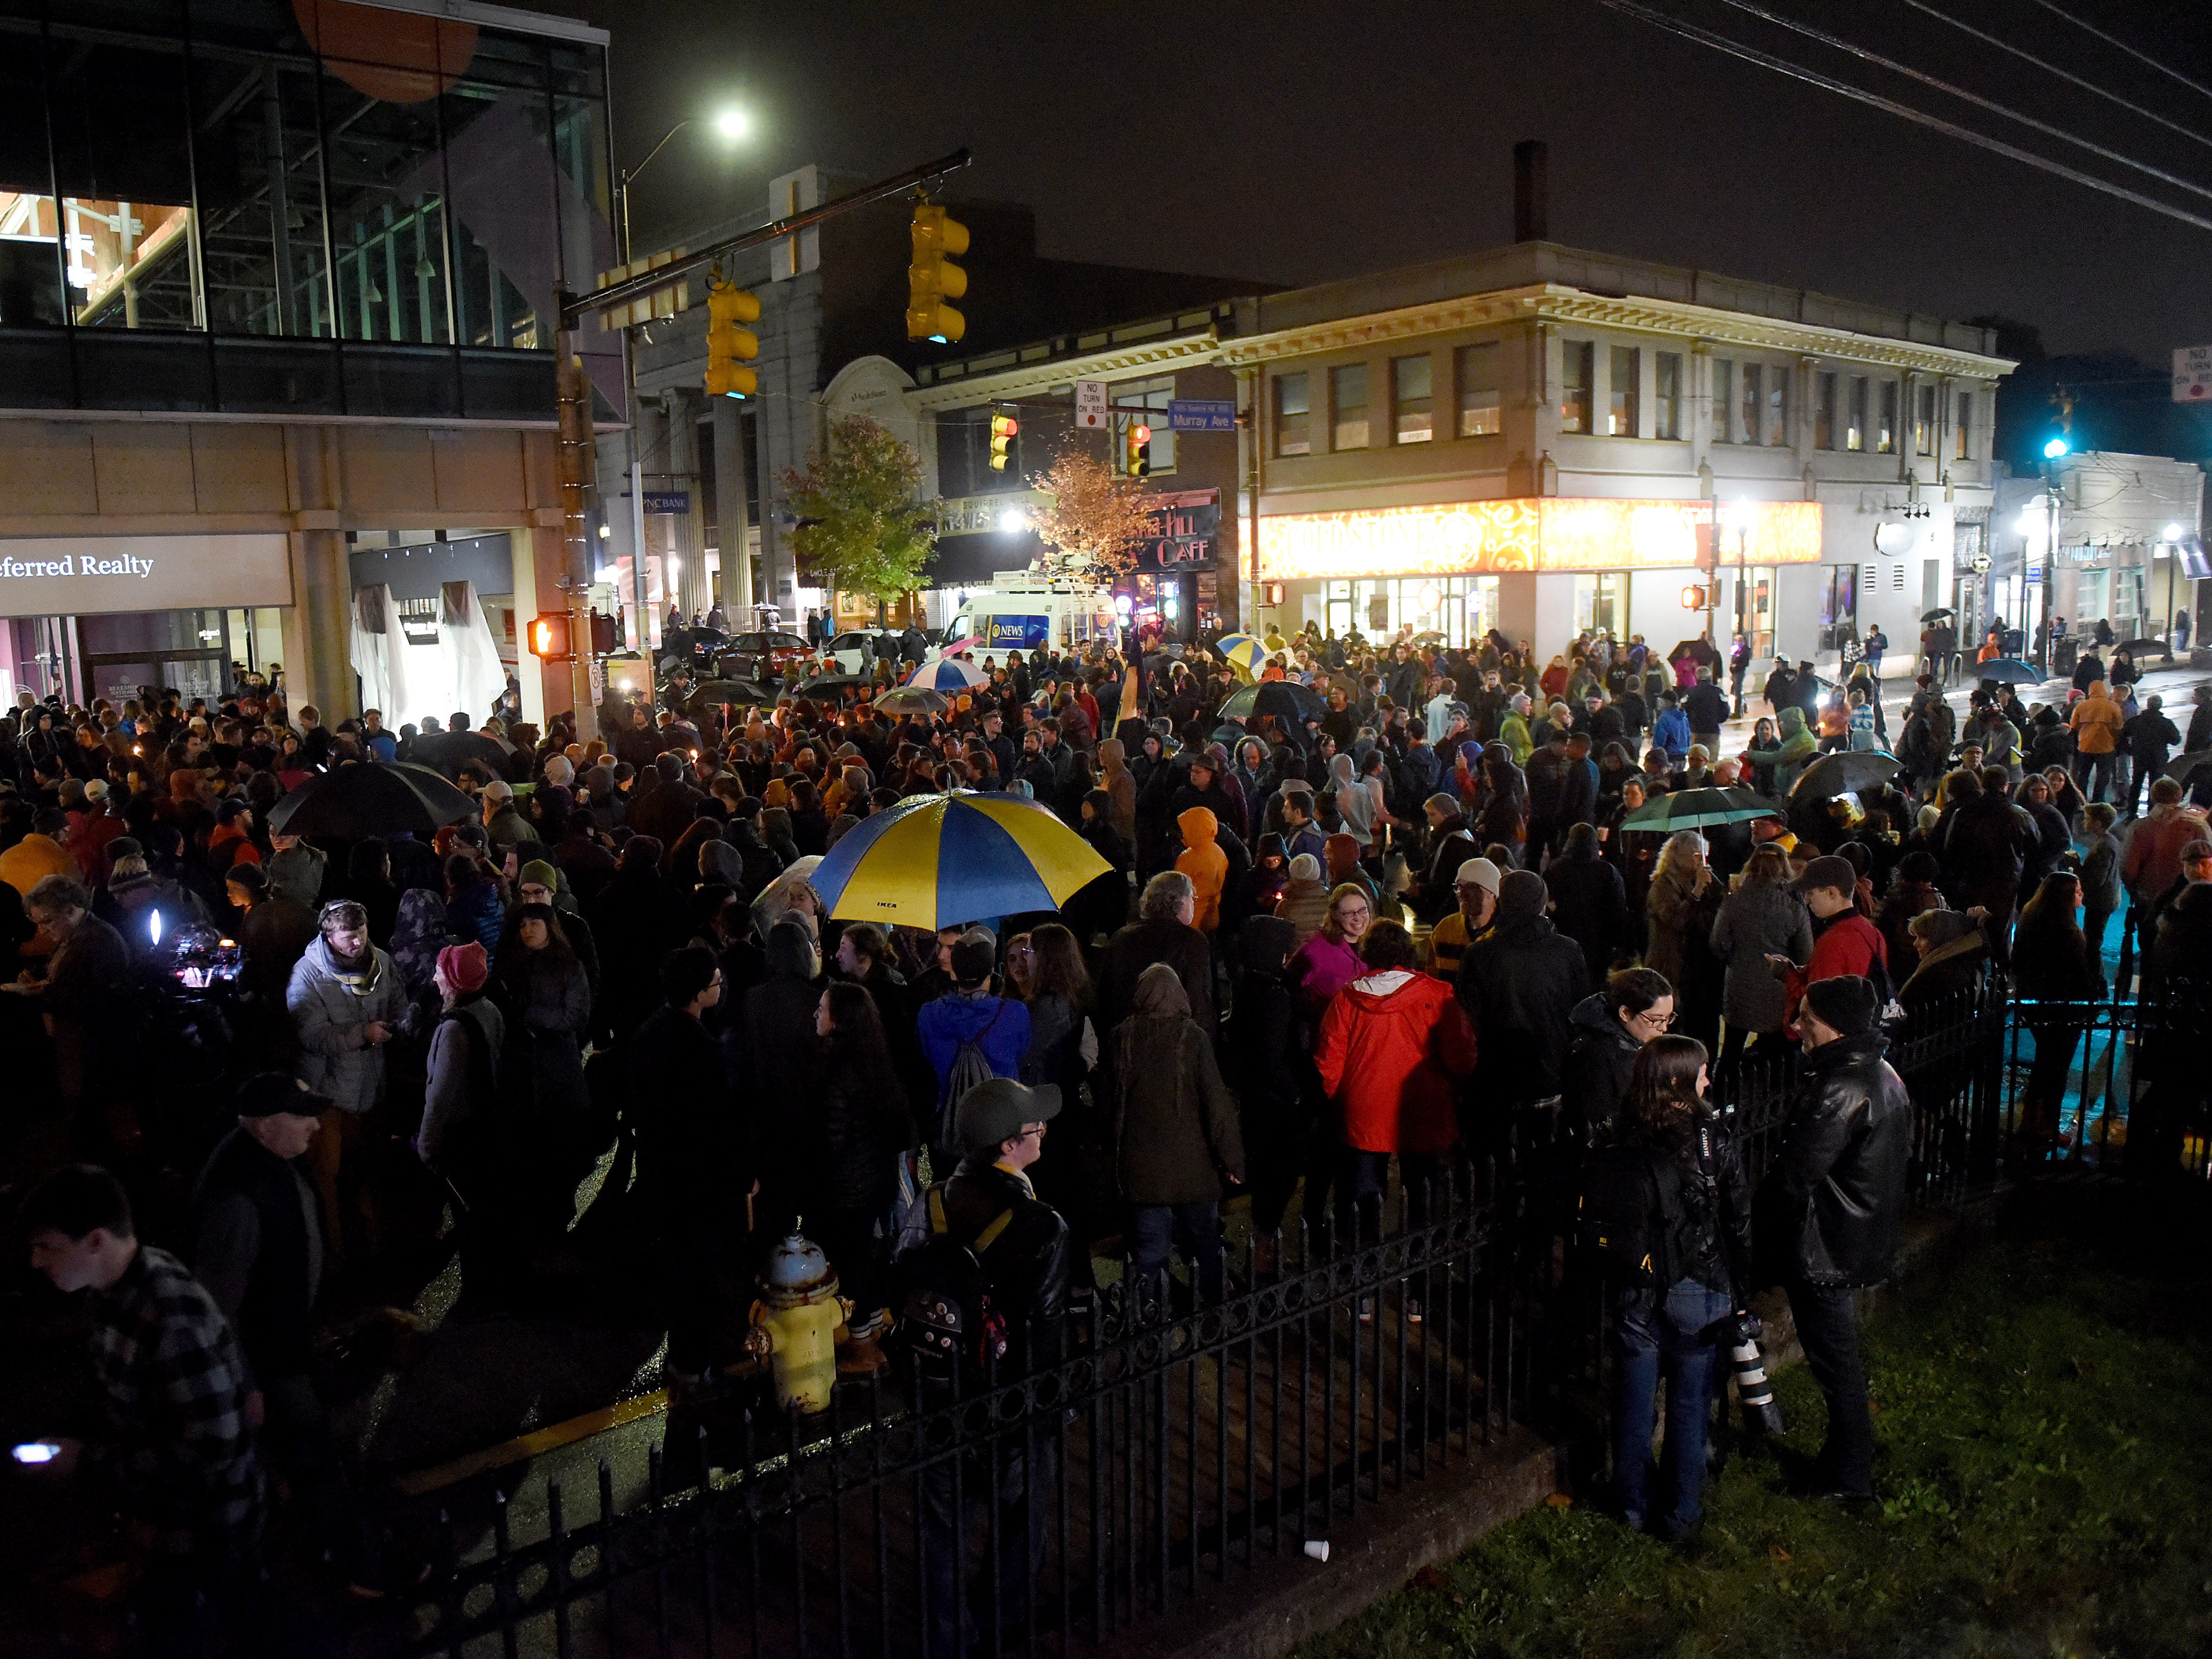 Mourners gather in the Squirrel Hill neighborhood of Pittsburgh for a vigil.